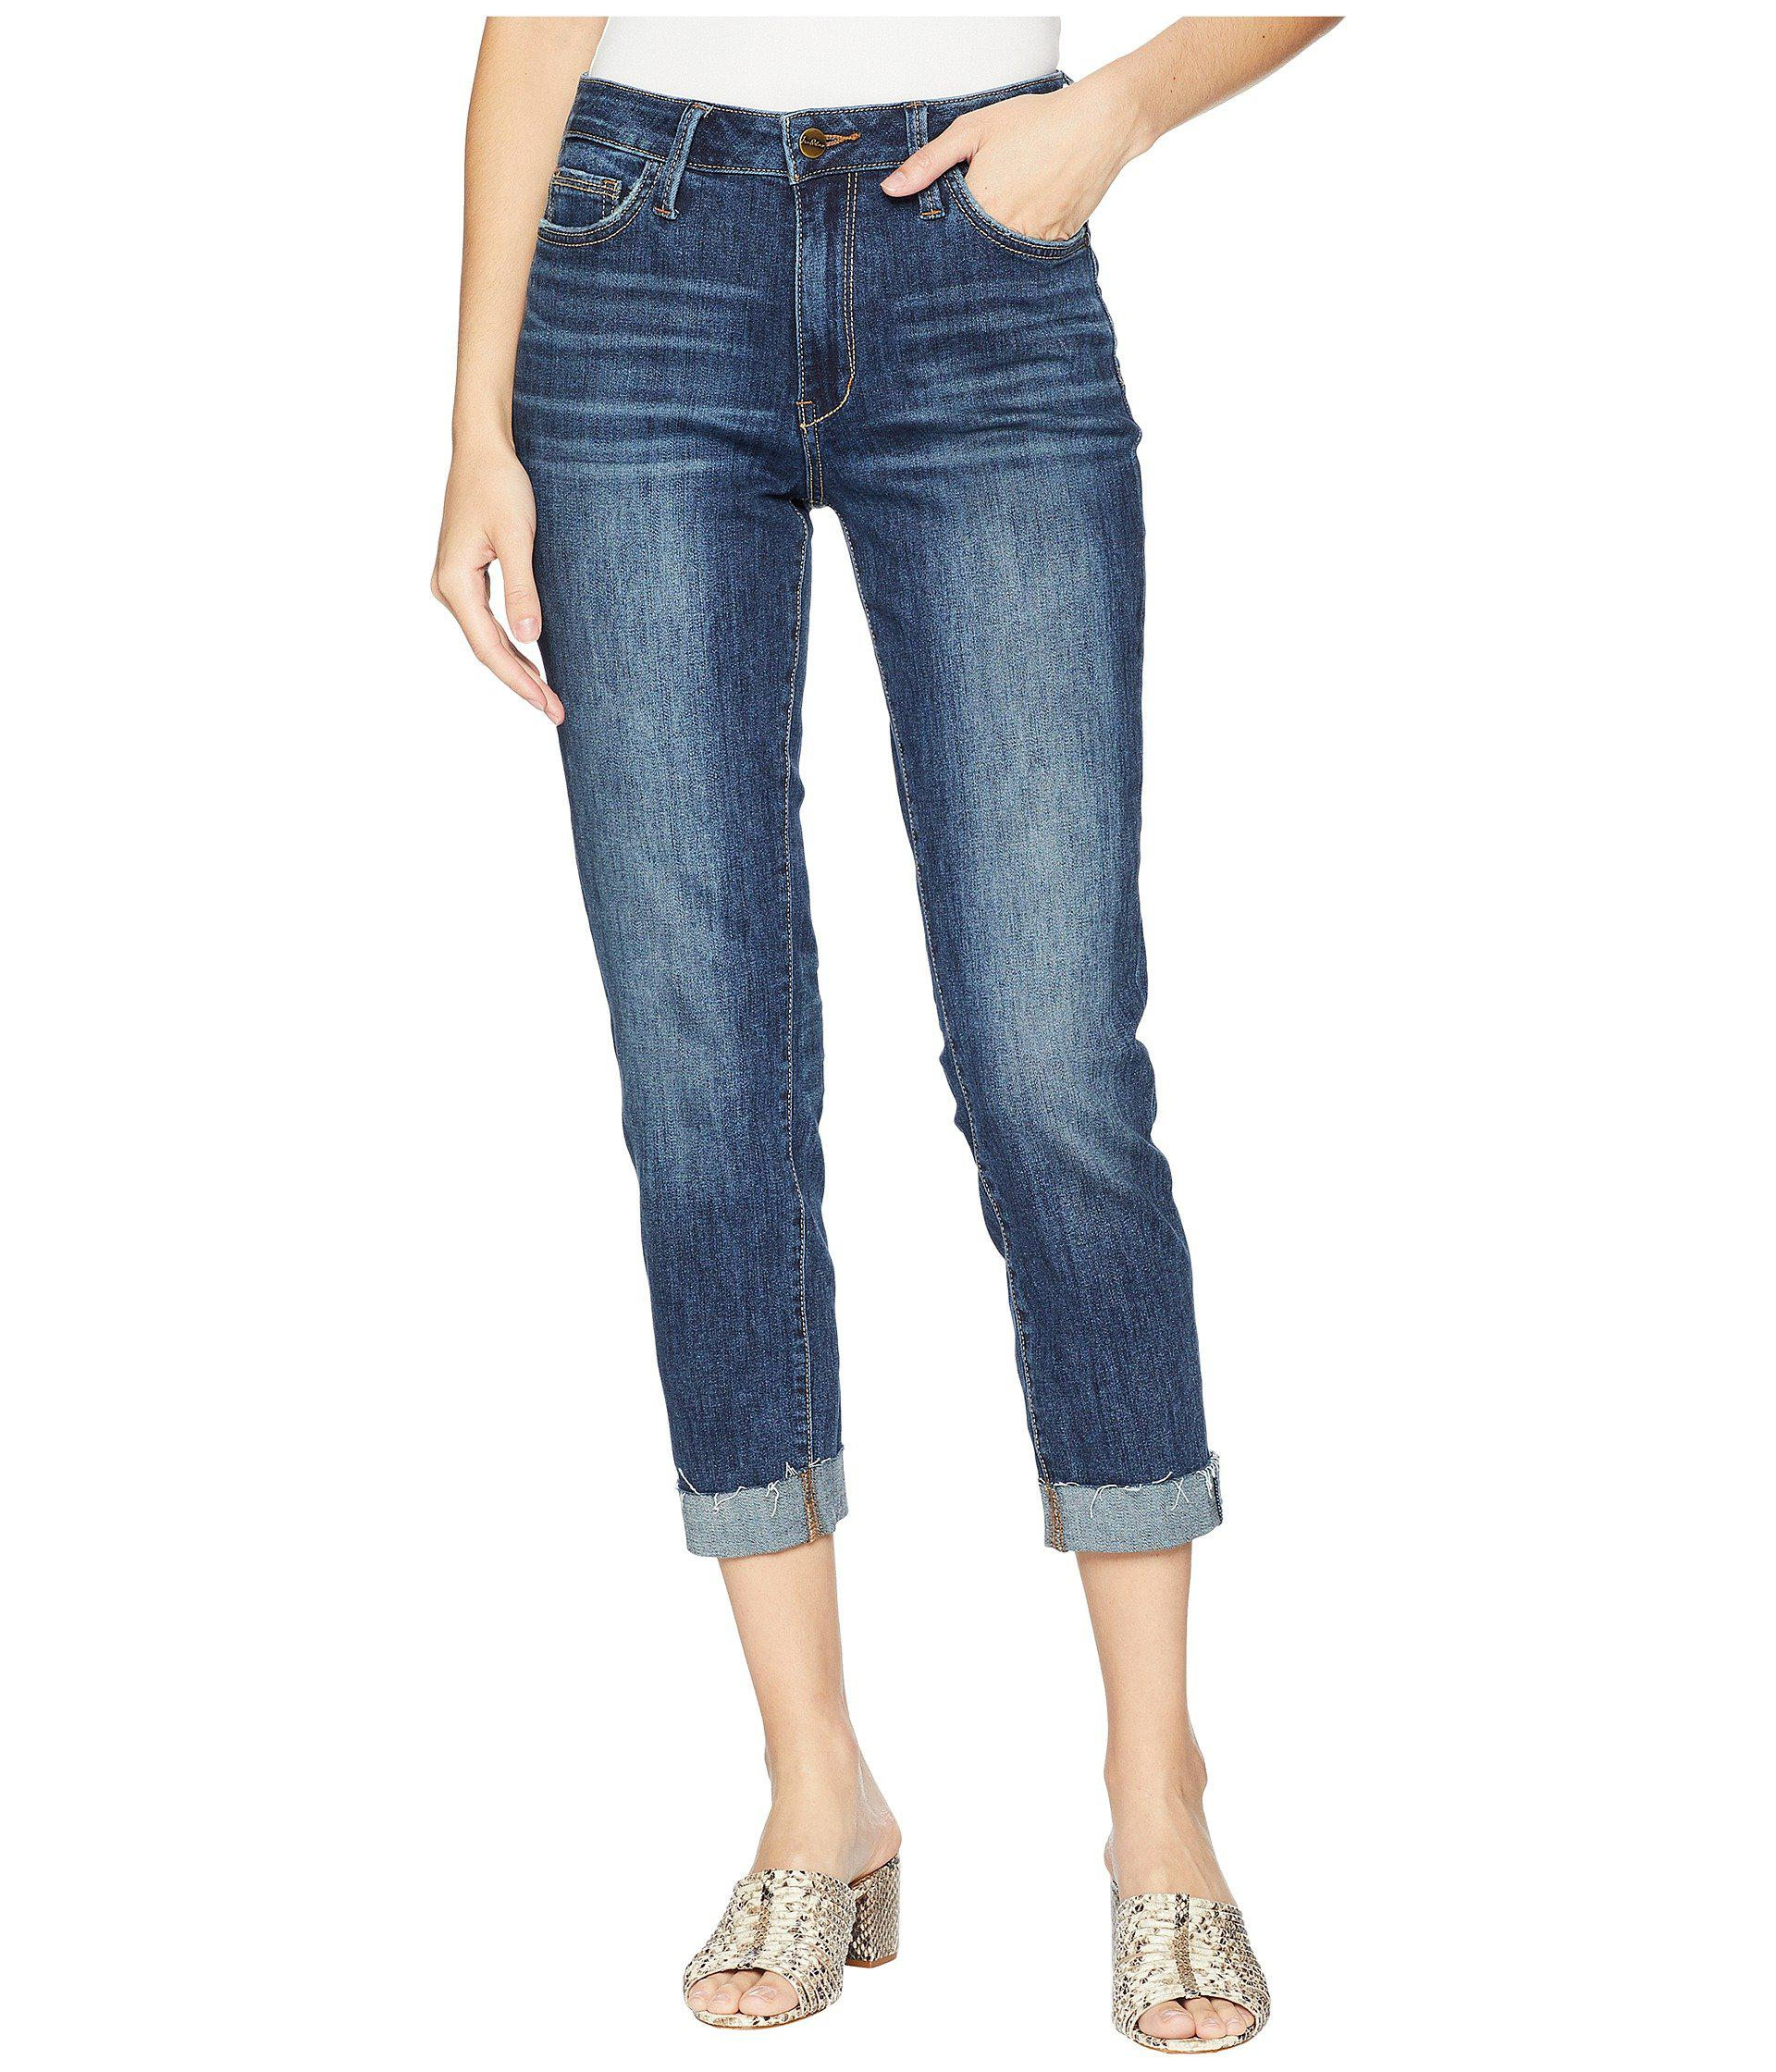 6f86030bf Lyst - Sam Edelman The Mary Jane High-rise Straight Crop In Rae in ...